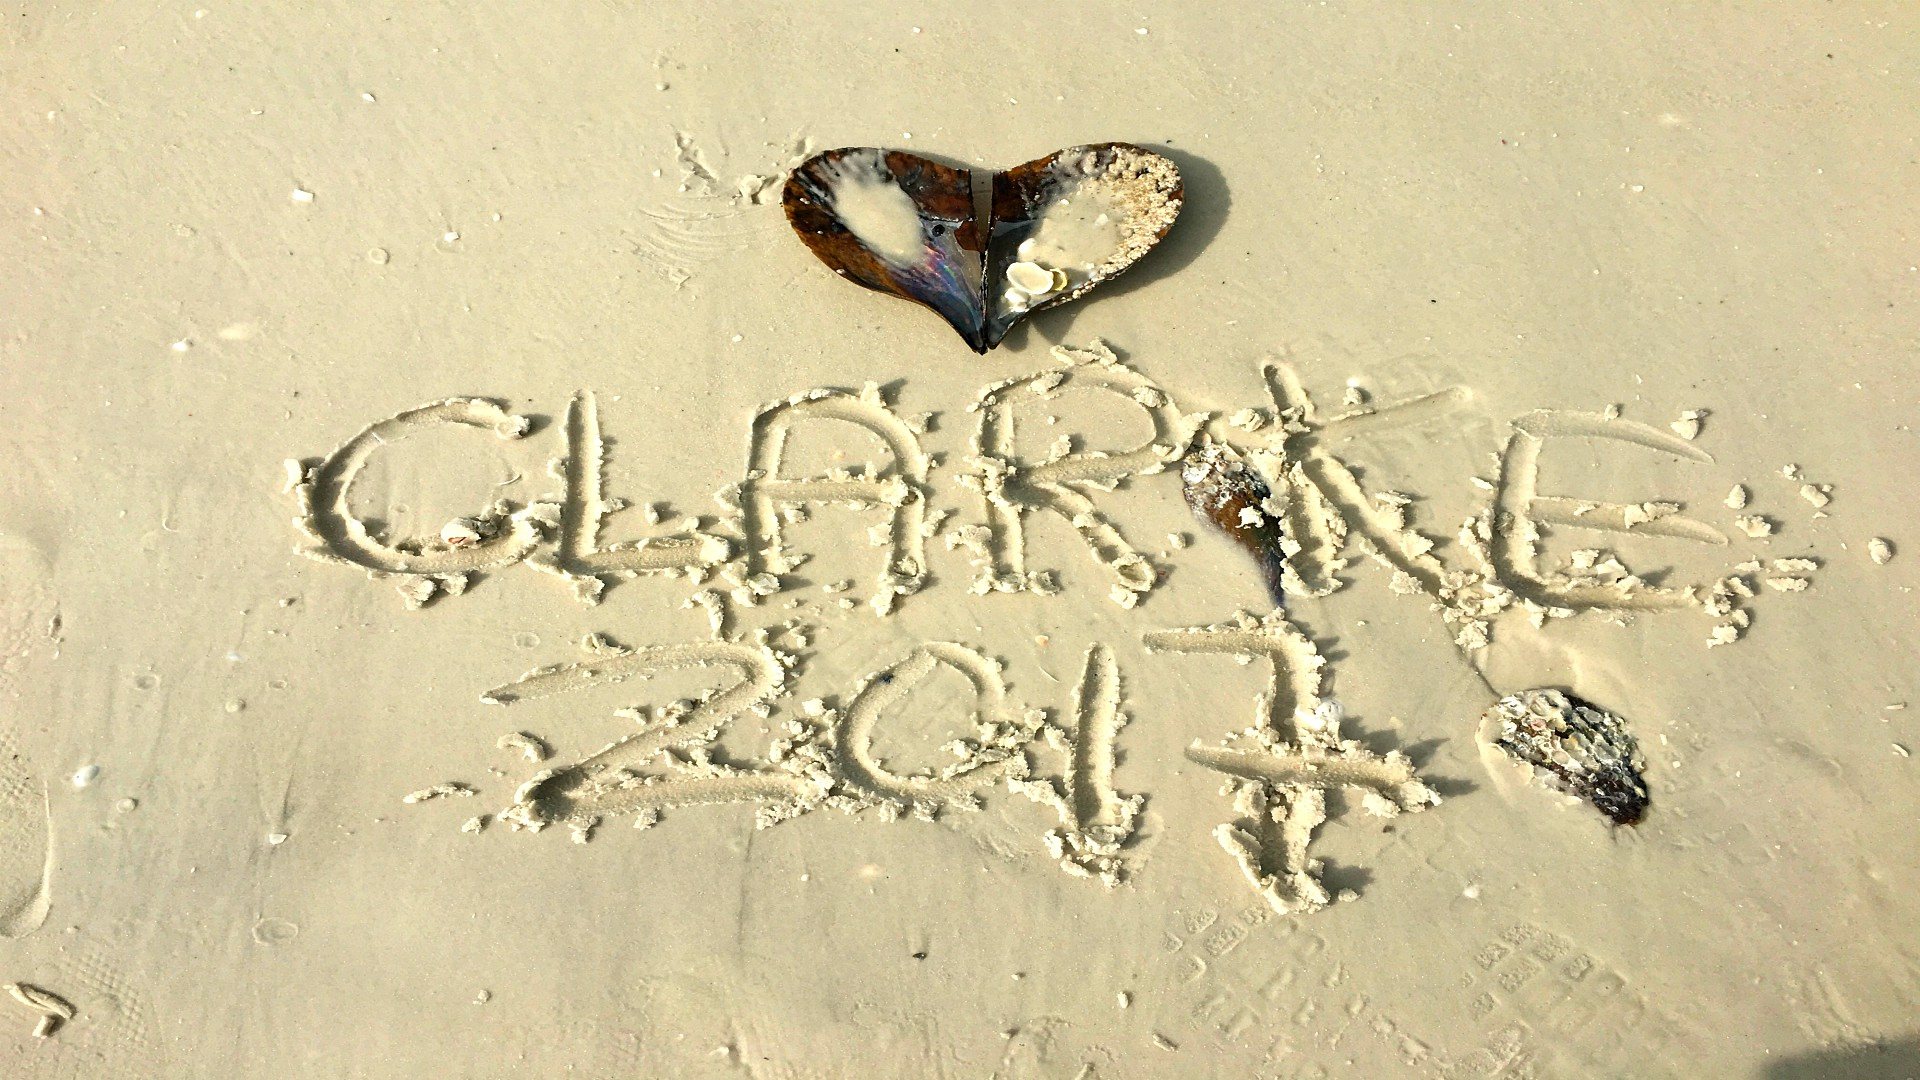 Clarke sign in the sand